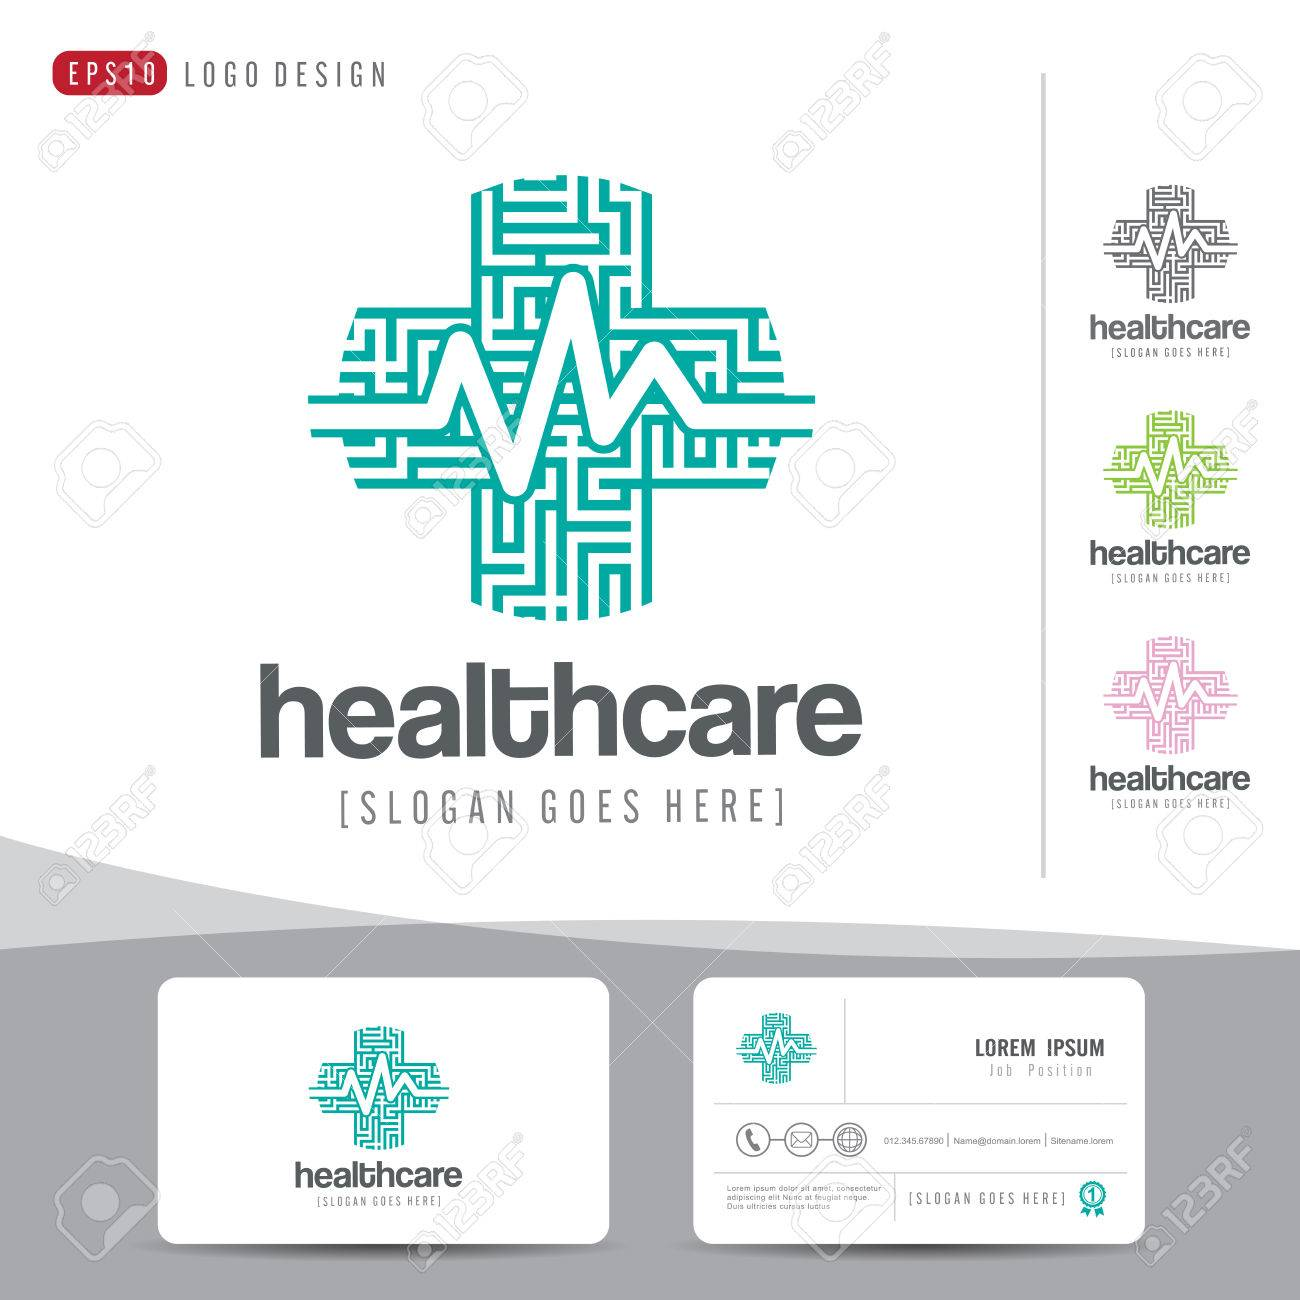 Hospital business card akbaeenw hospital business card reheart Images